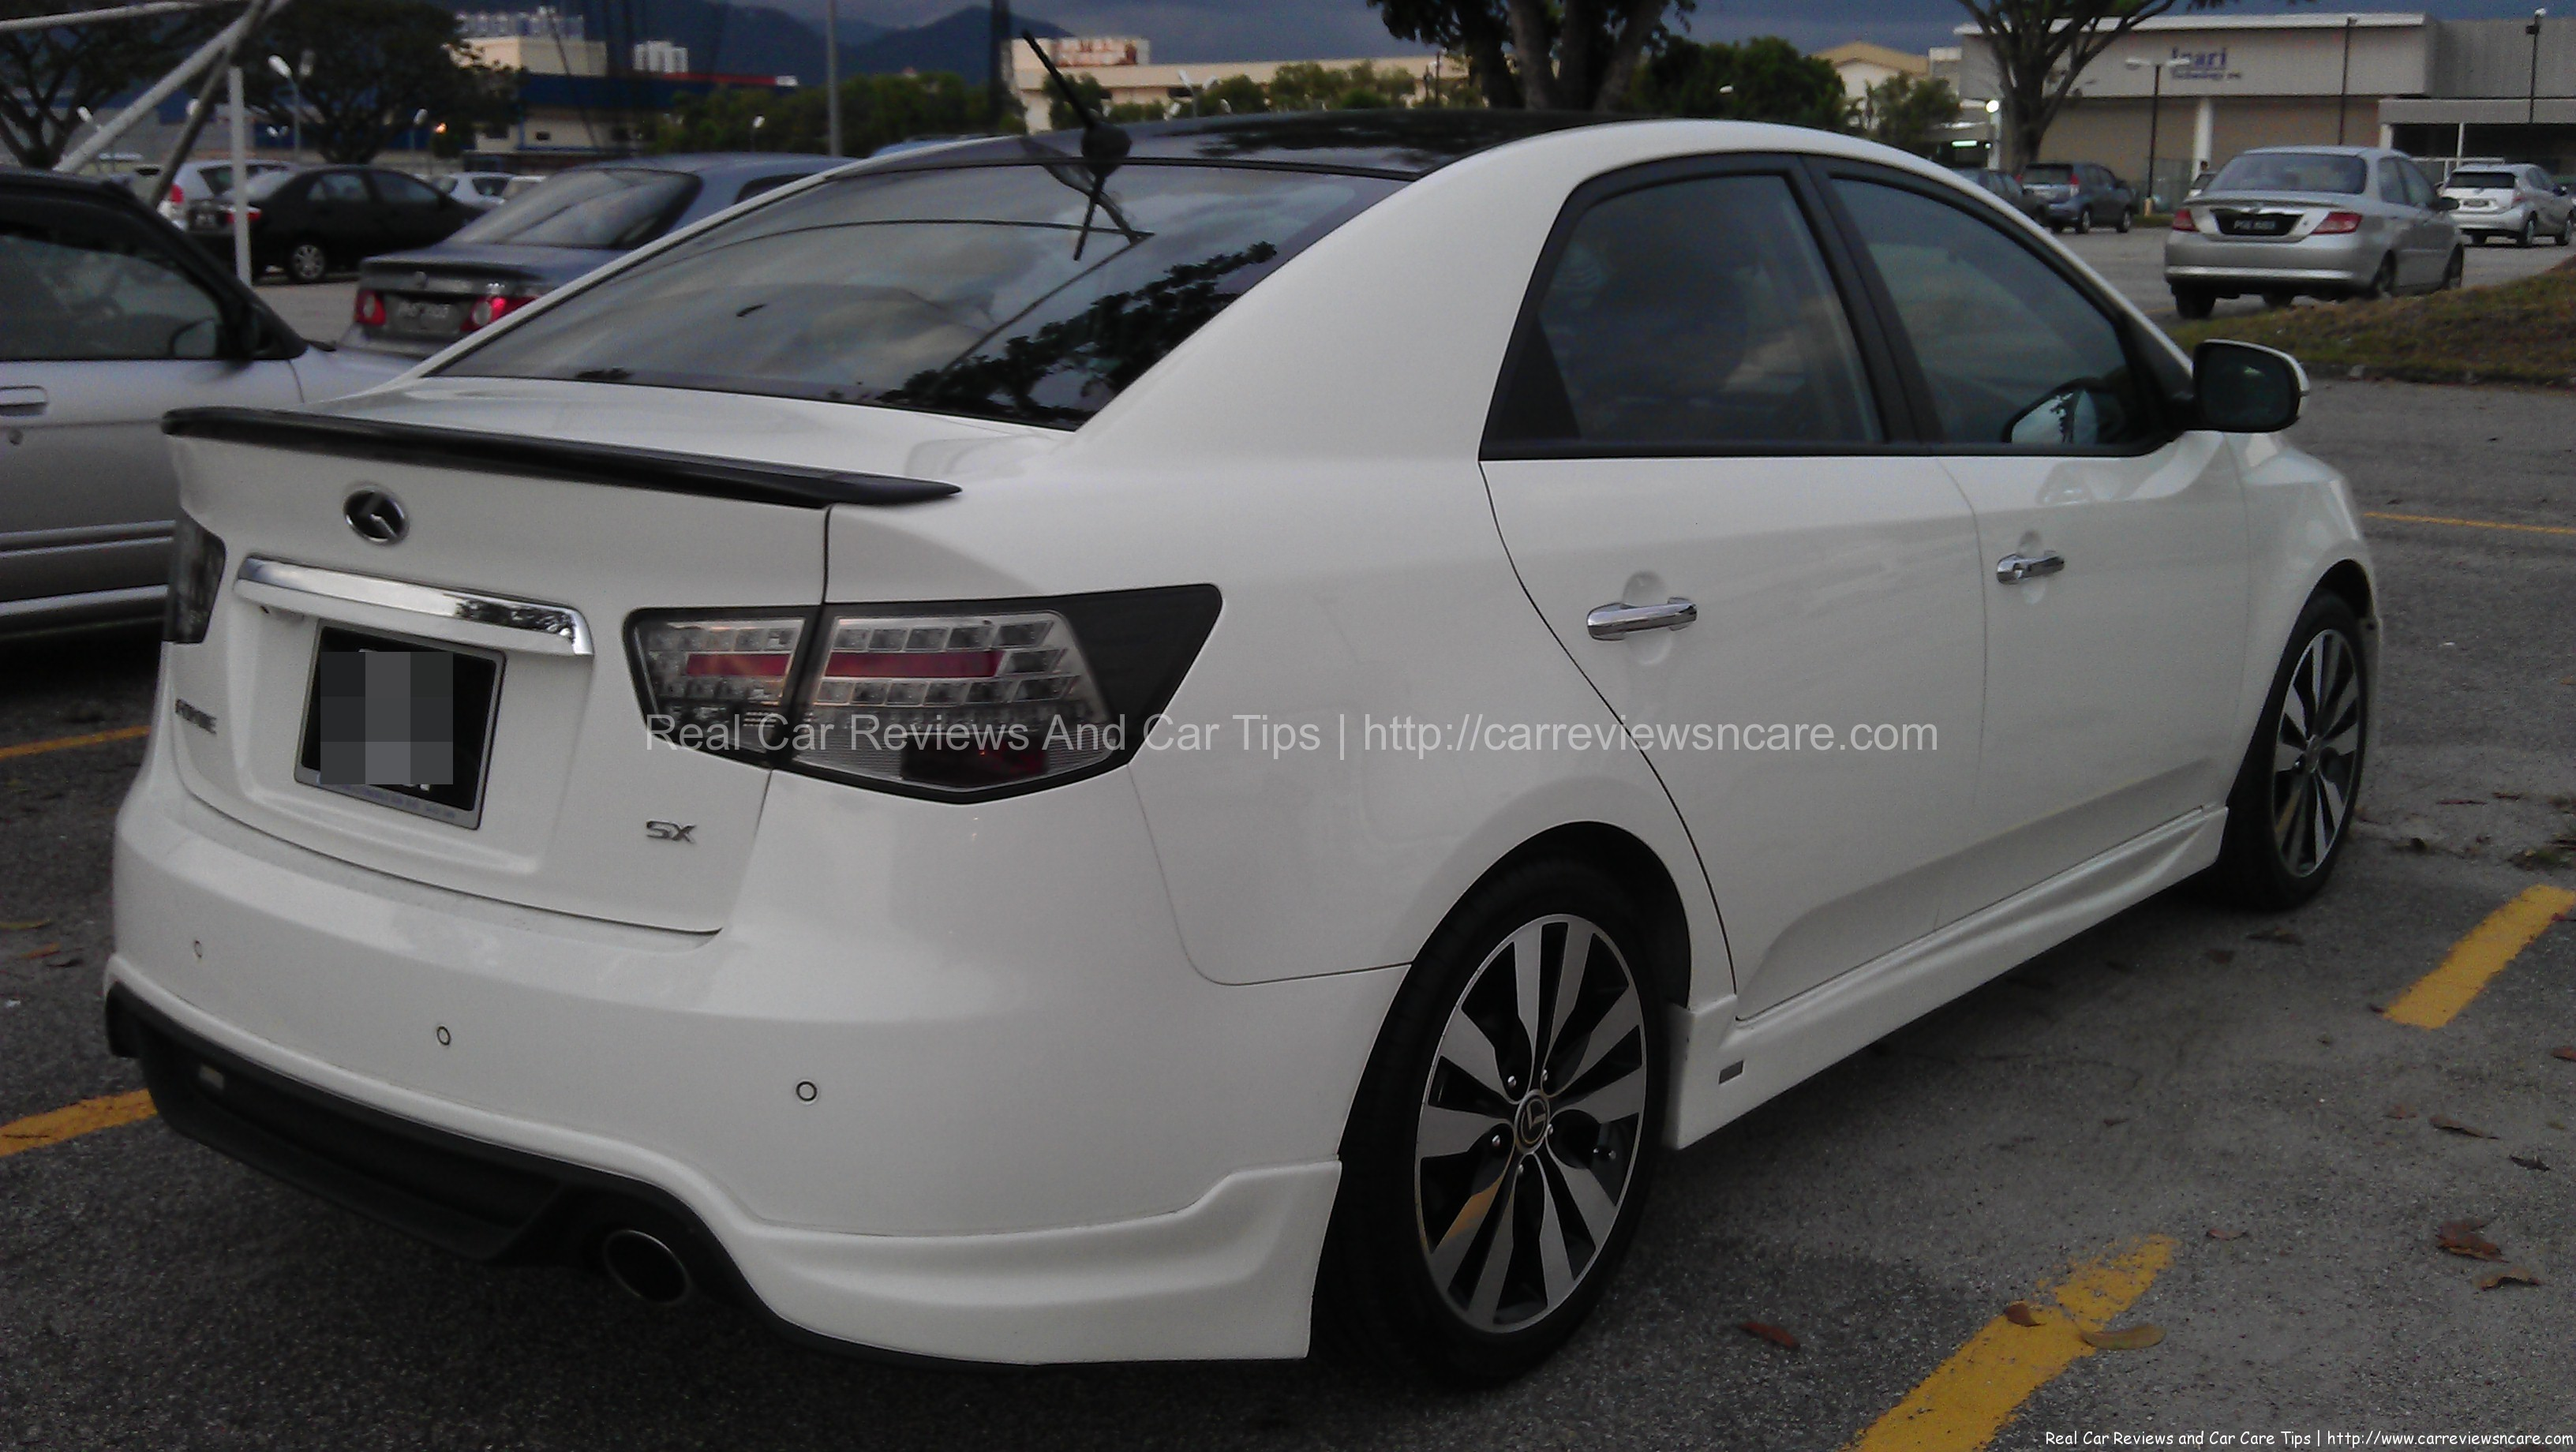 Naza Kia Forte 1.6 SX Rear View